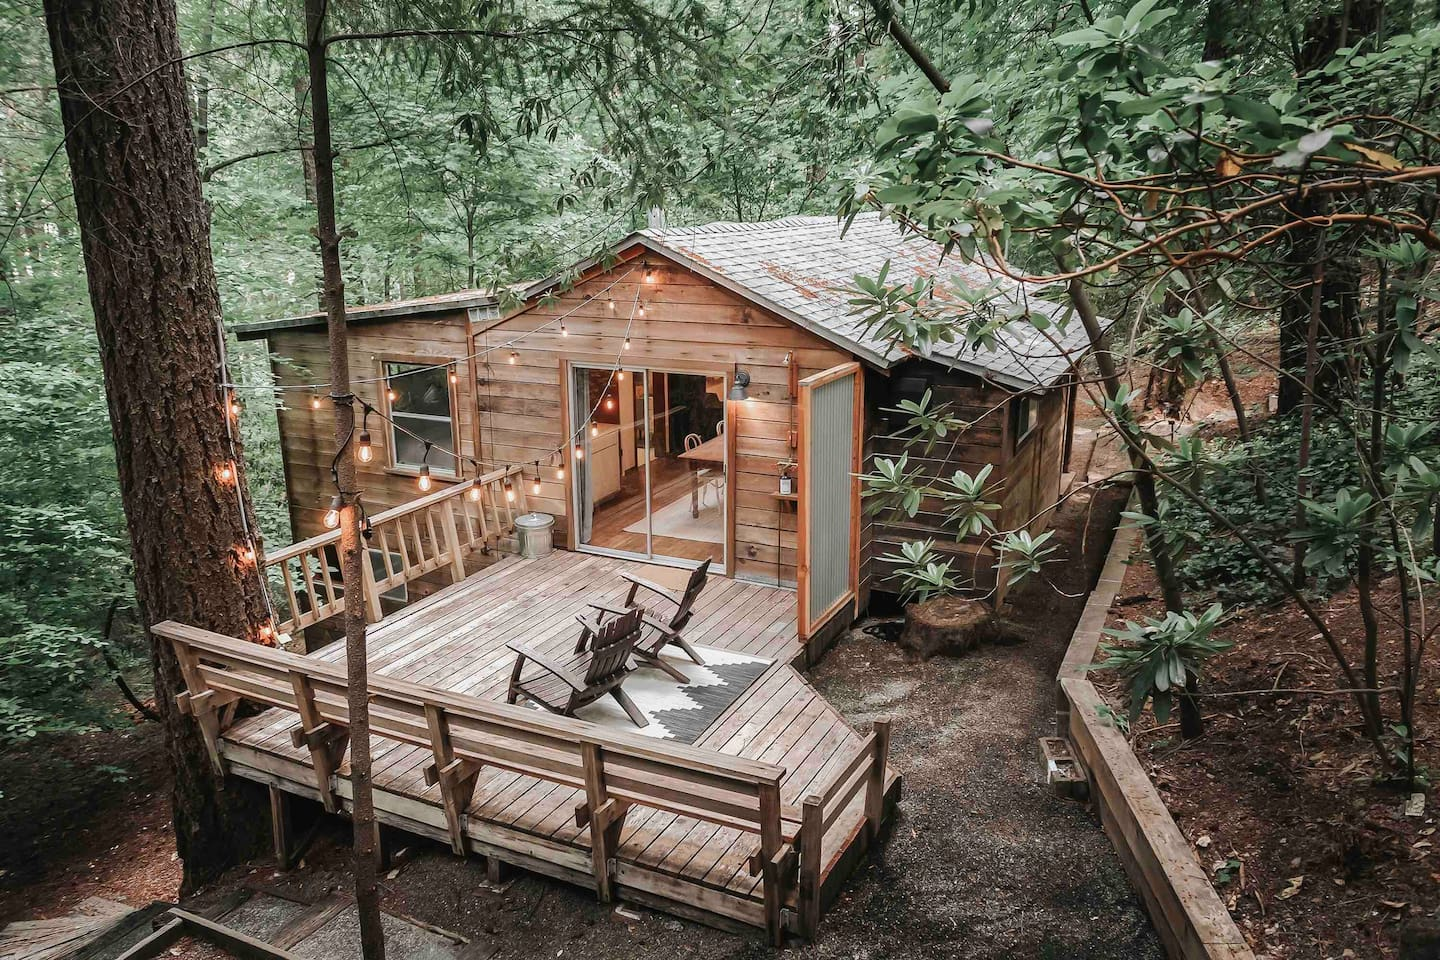 adorable wooden cabin with wooden deck and twinkle lights cabins in the USA